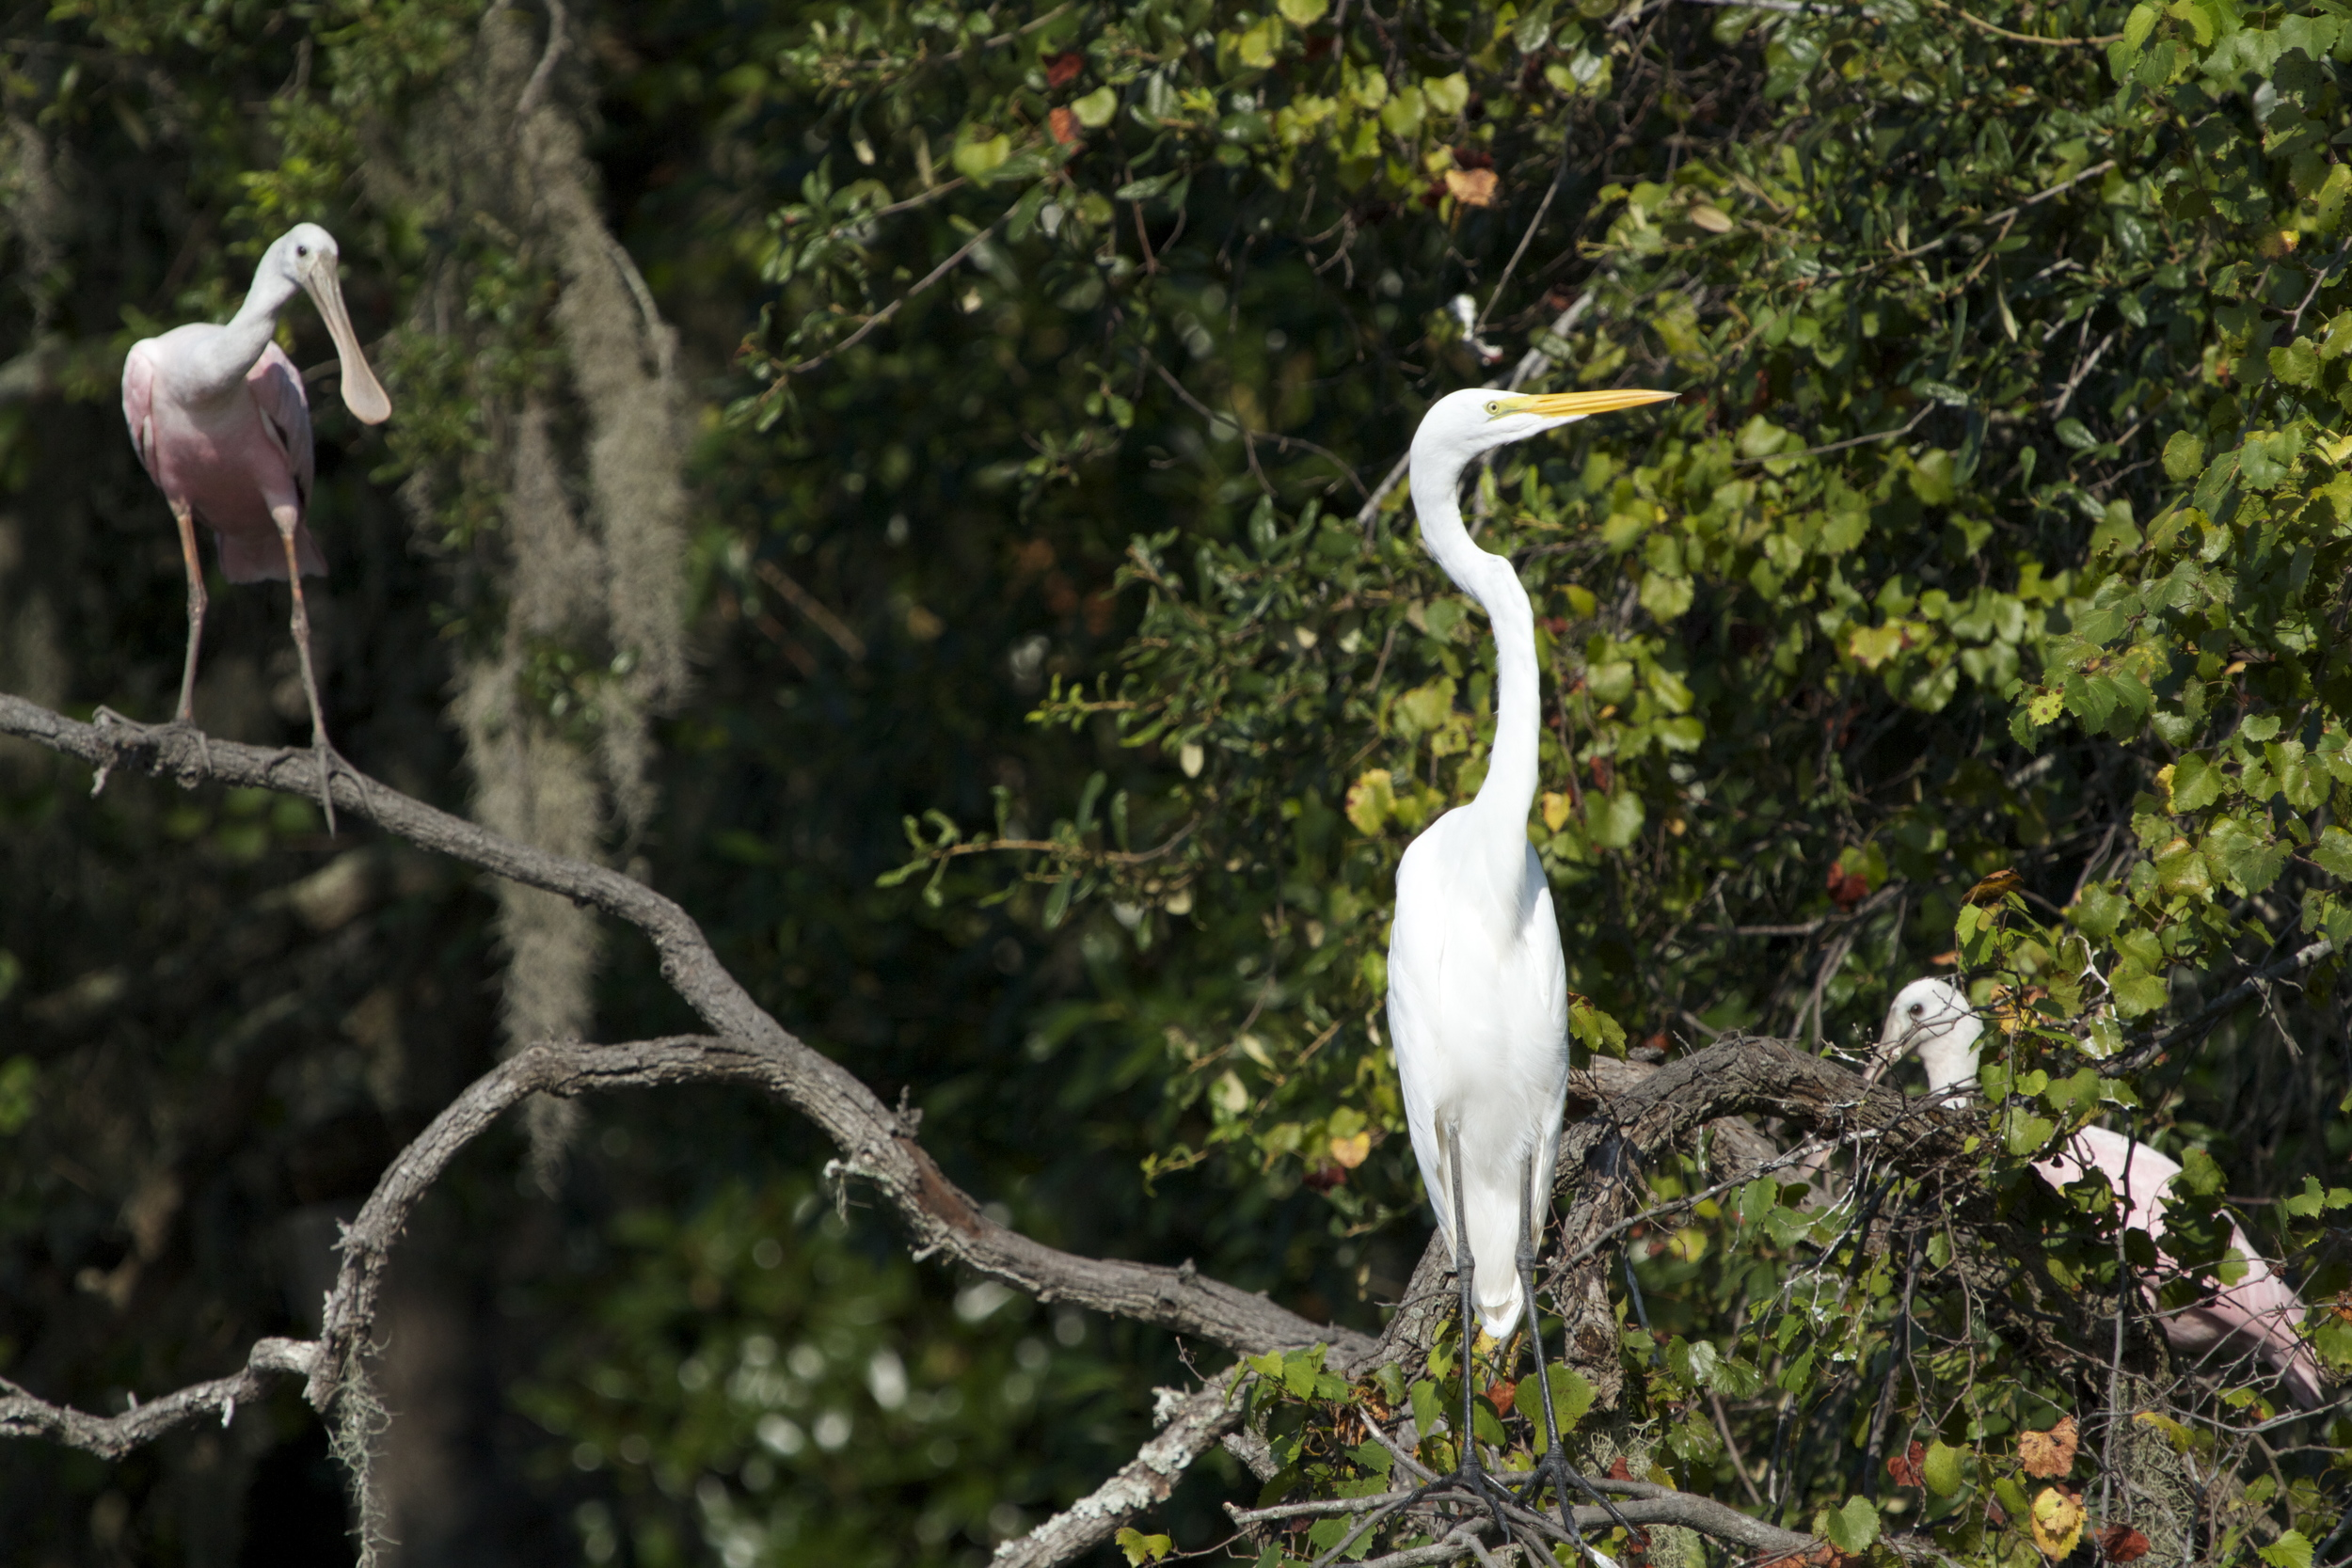 Oh Oh, He's Back! The Egret gets nervous.